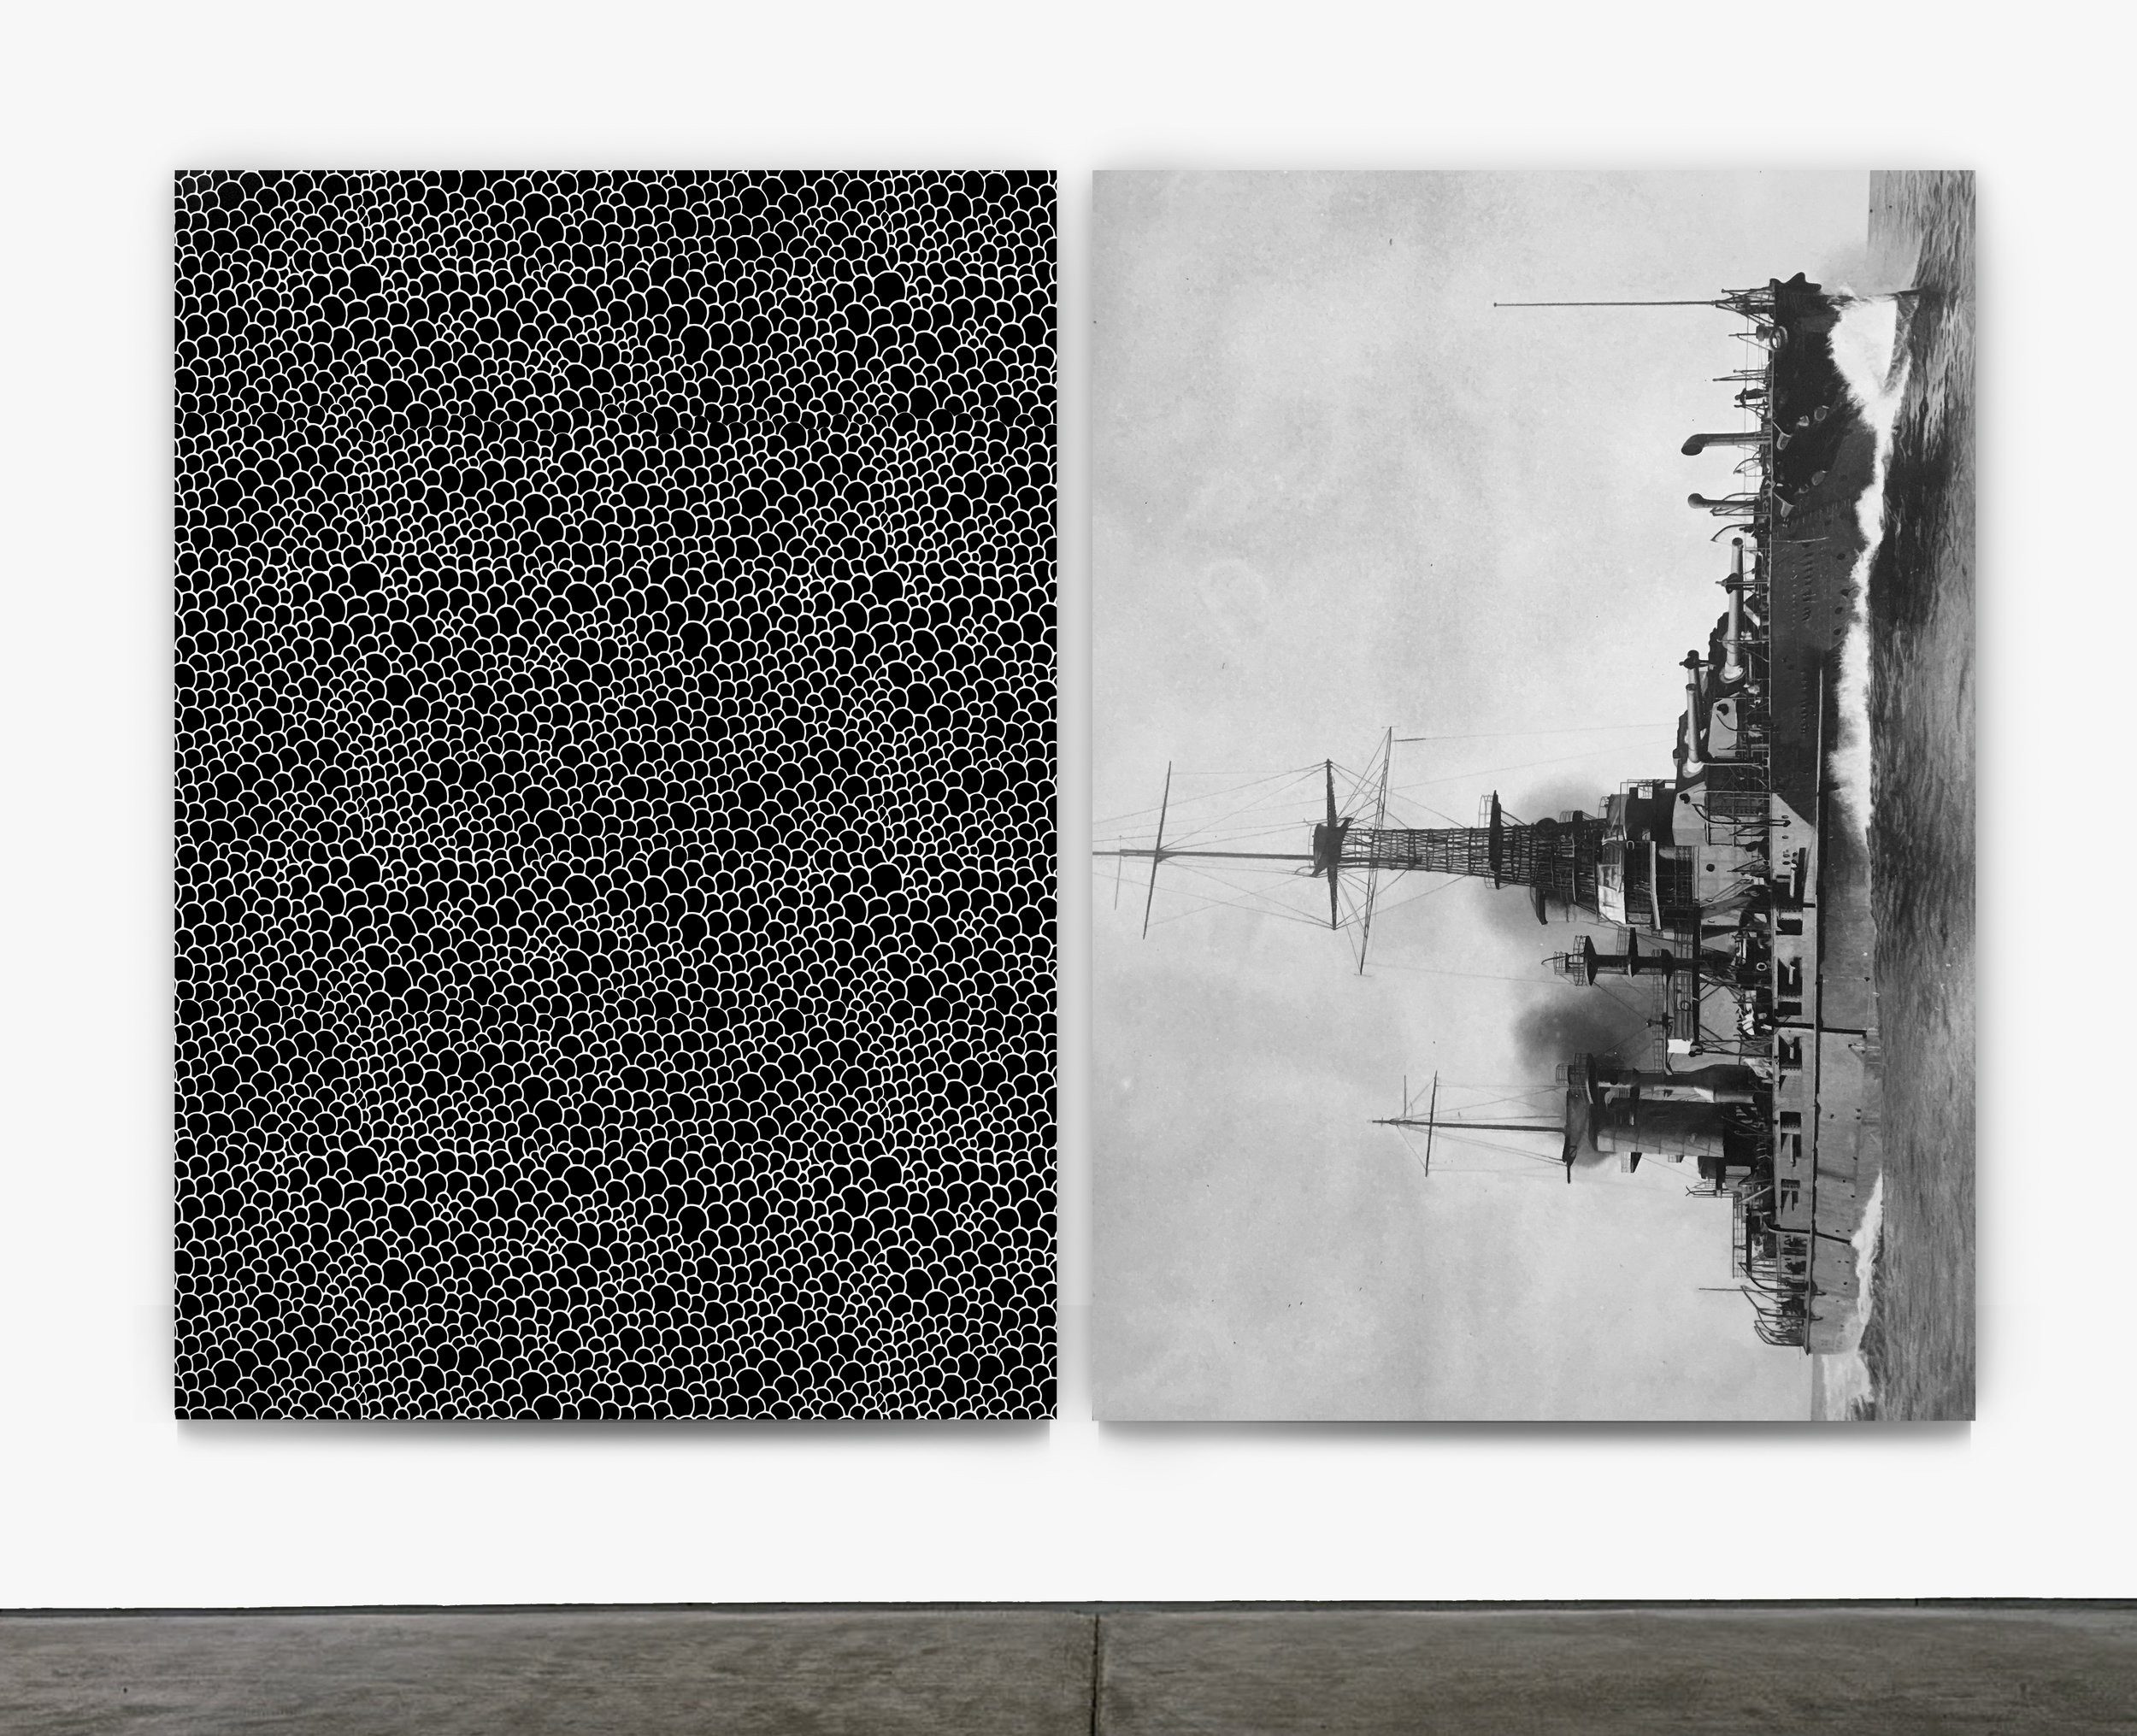 Leviathan  2016 left panel, silkscreen on canvas, right panel, oil on canvas 68 x 48 inches each